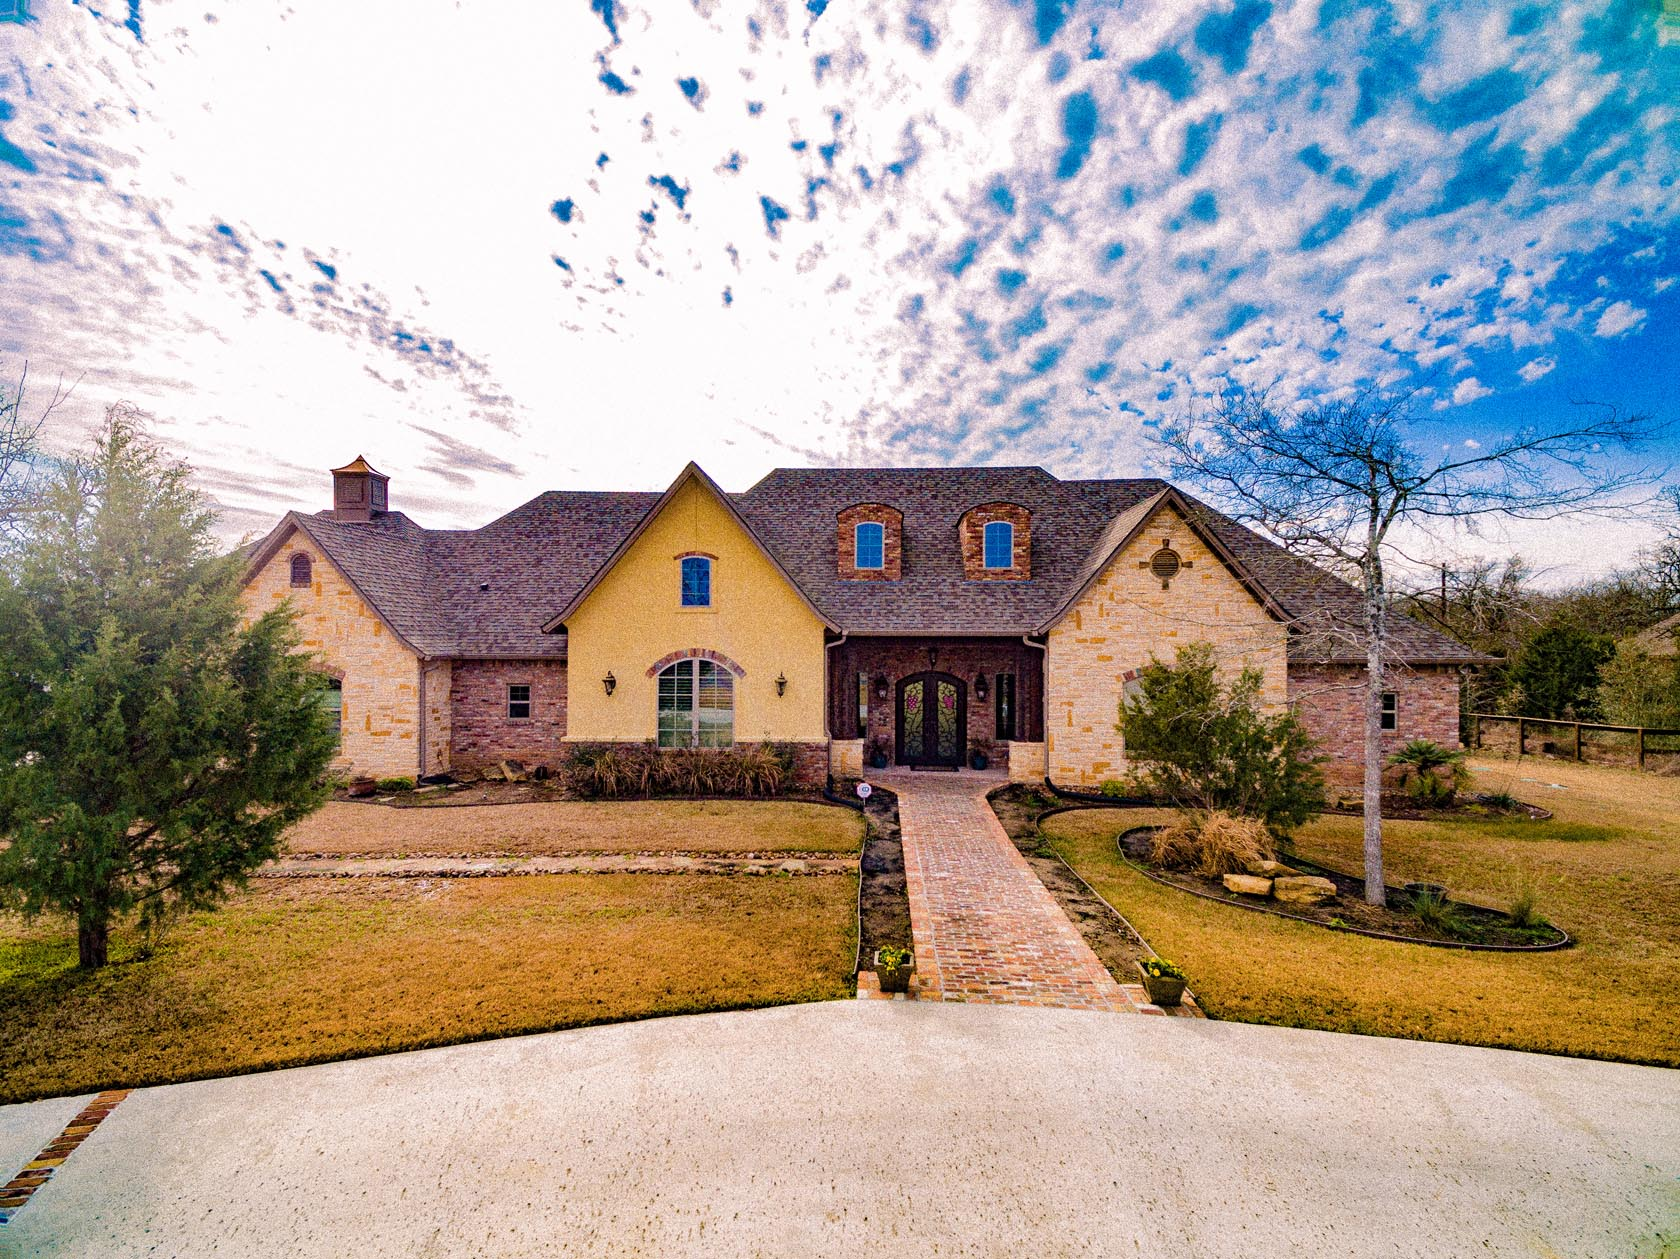 College station dream home for sale 17976 ranch house for Dream house for sale